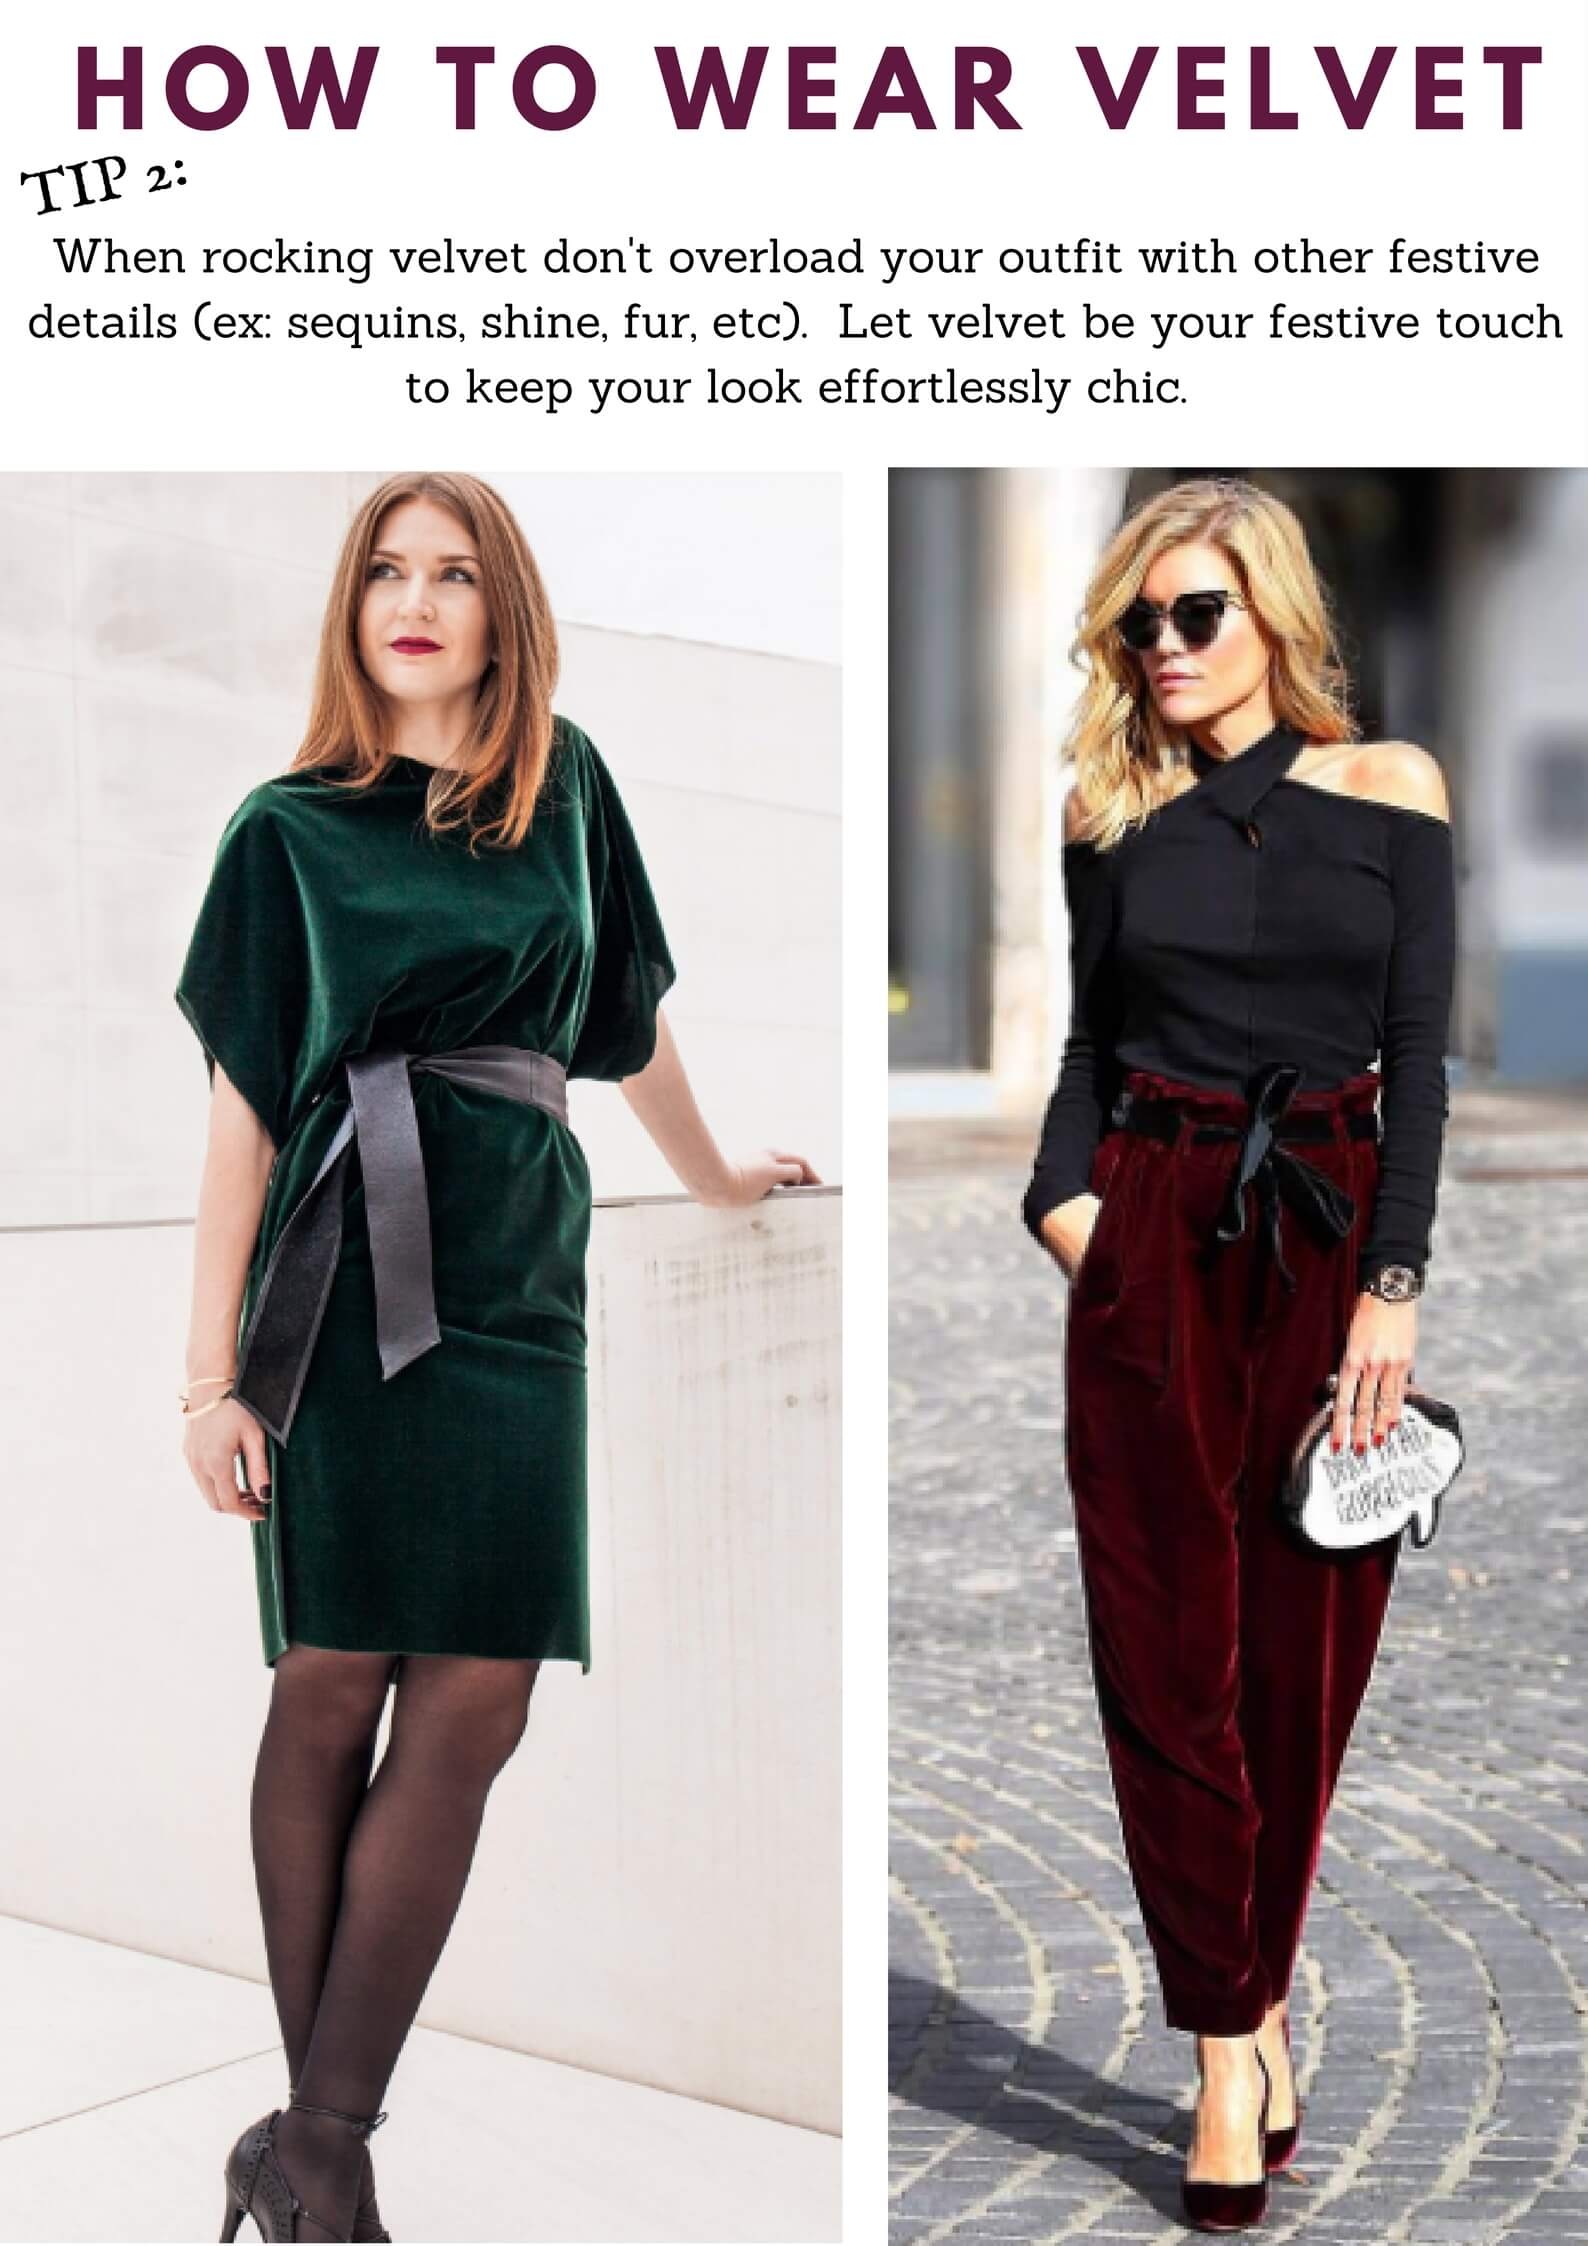 Velvet Outfit Ideas How To Wear